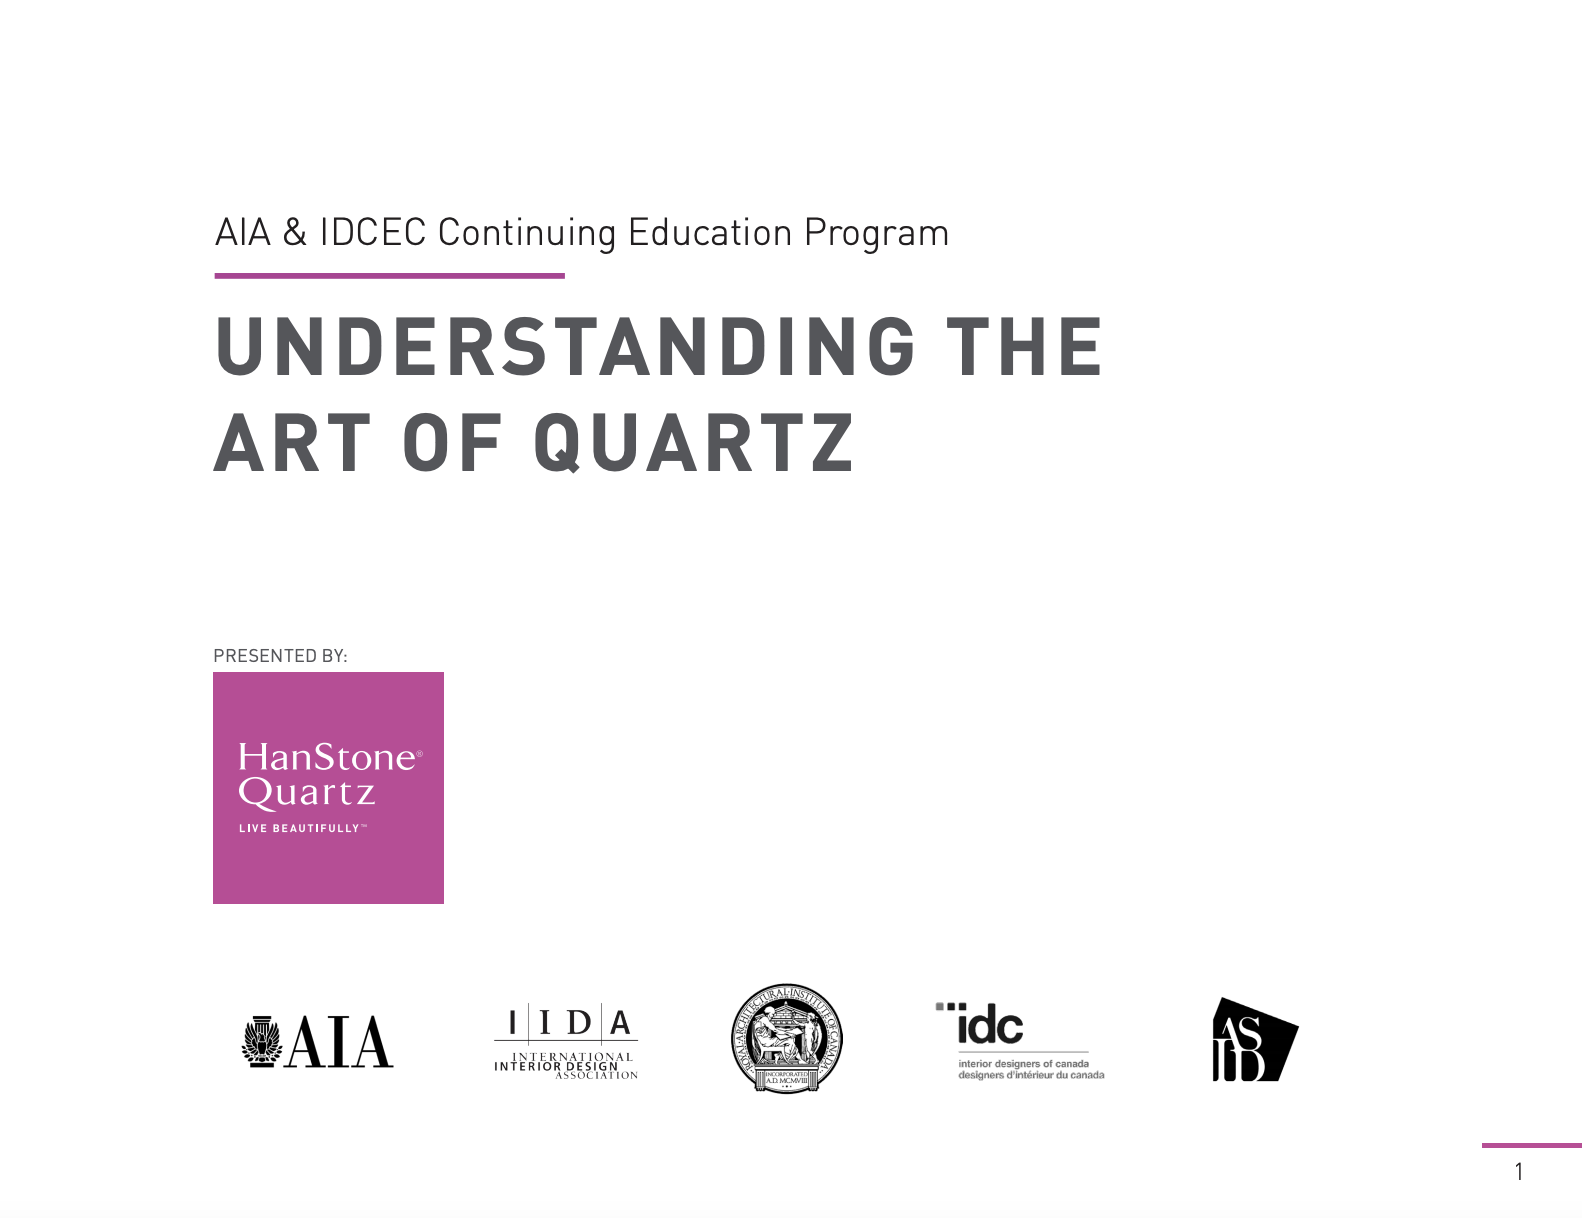 CEU: The Art of Quartz